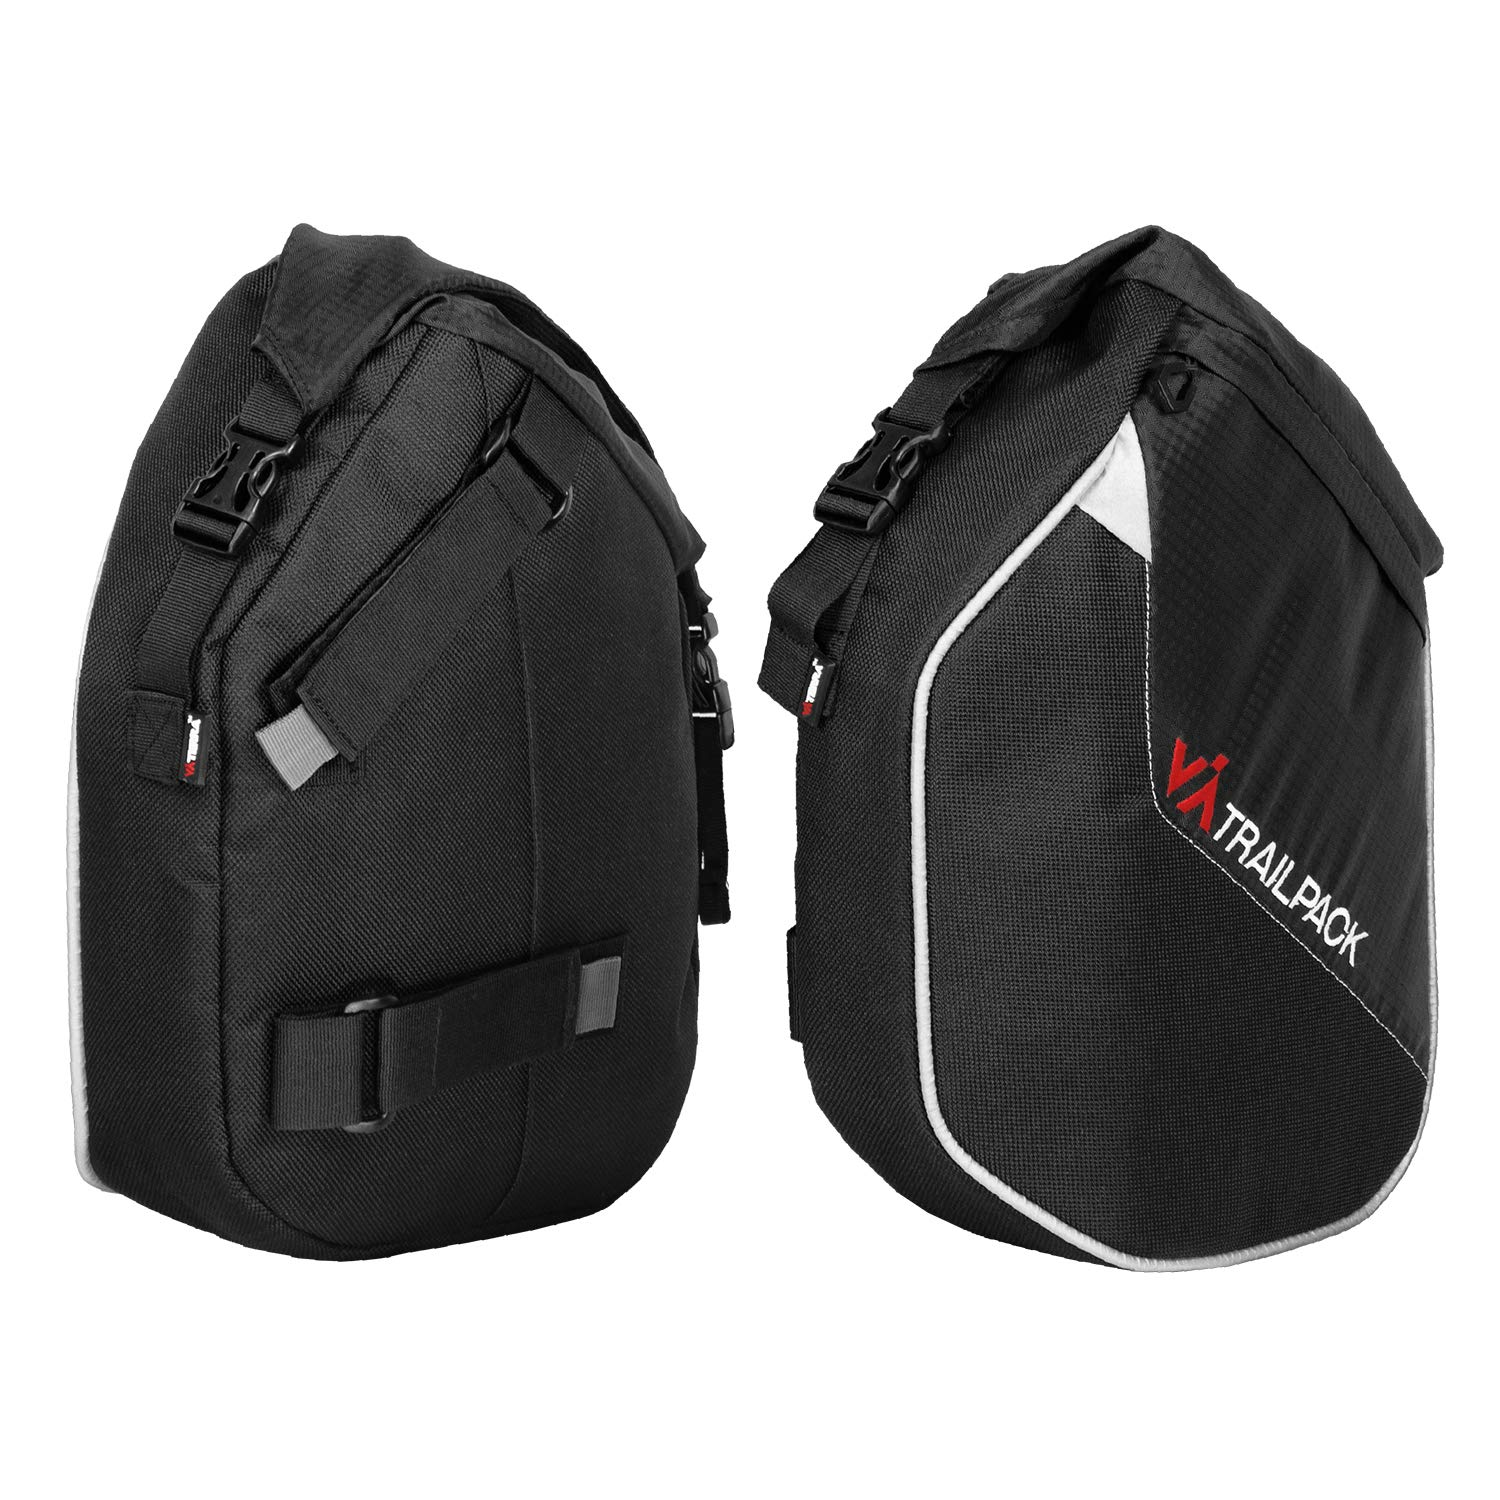 ViaTerra Water Proof Trailpack for Royal Enfield Himalayan (Black)